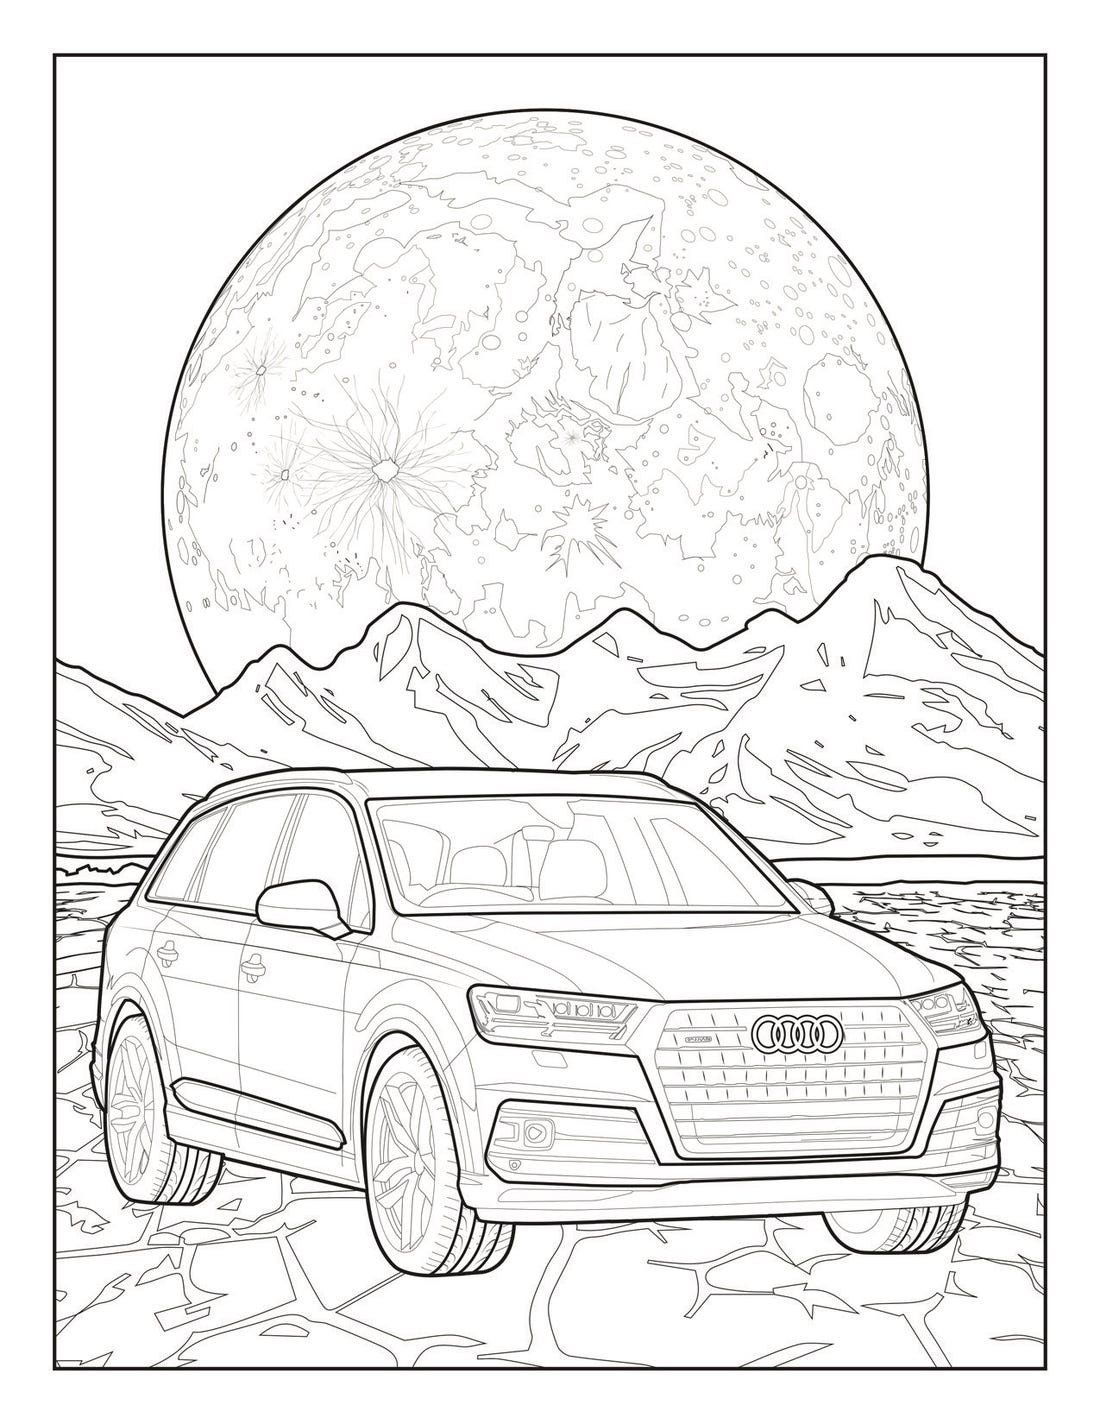 Race Car Coloring Books Audi And Mercedes Release Coloring Pages To Battle In 2020 Cars Coloring Pages Cat Coloring Book Hello Kitty Colouring Pages